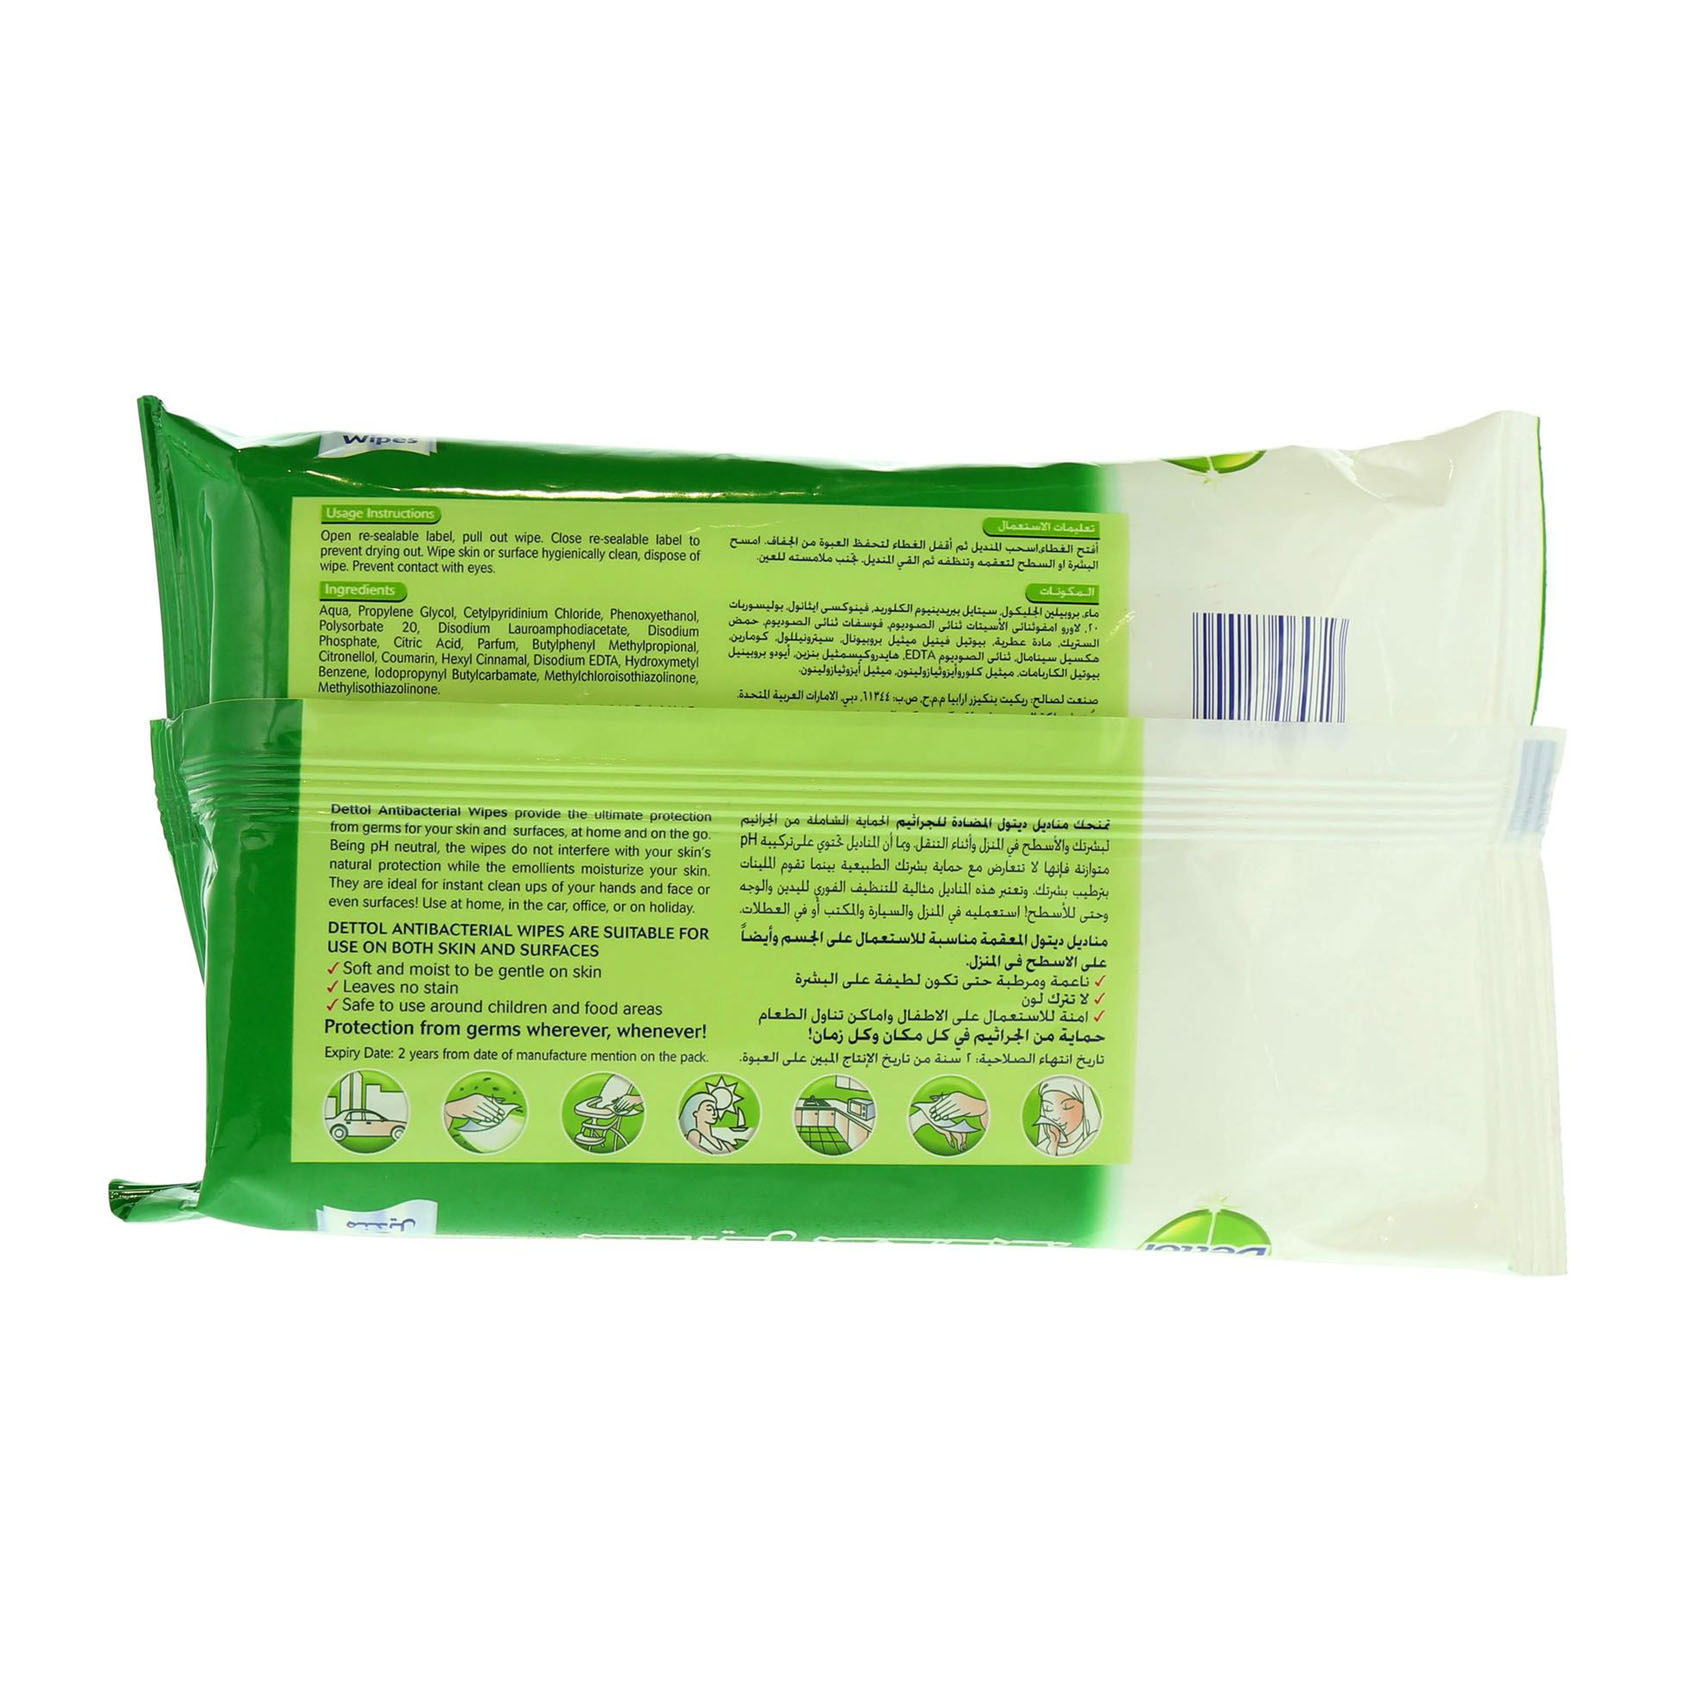 DETTOL ANTIBAC CLEANING WIPES 40'S